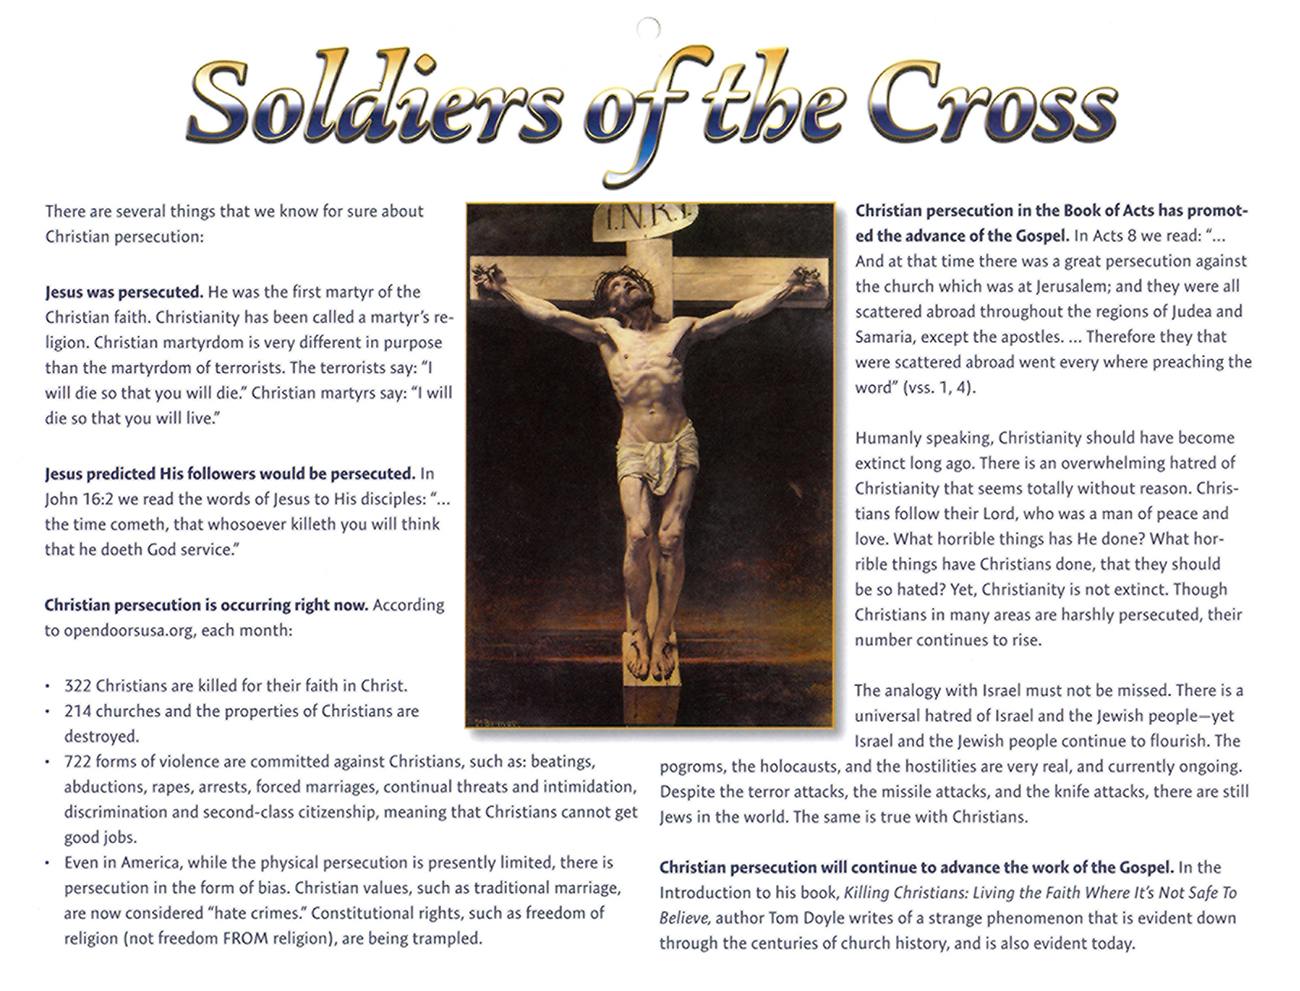 2016 Prophecy Calendar: Soldiers of the Cross